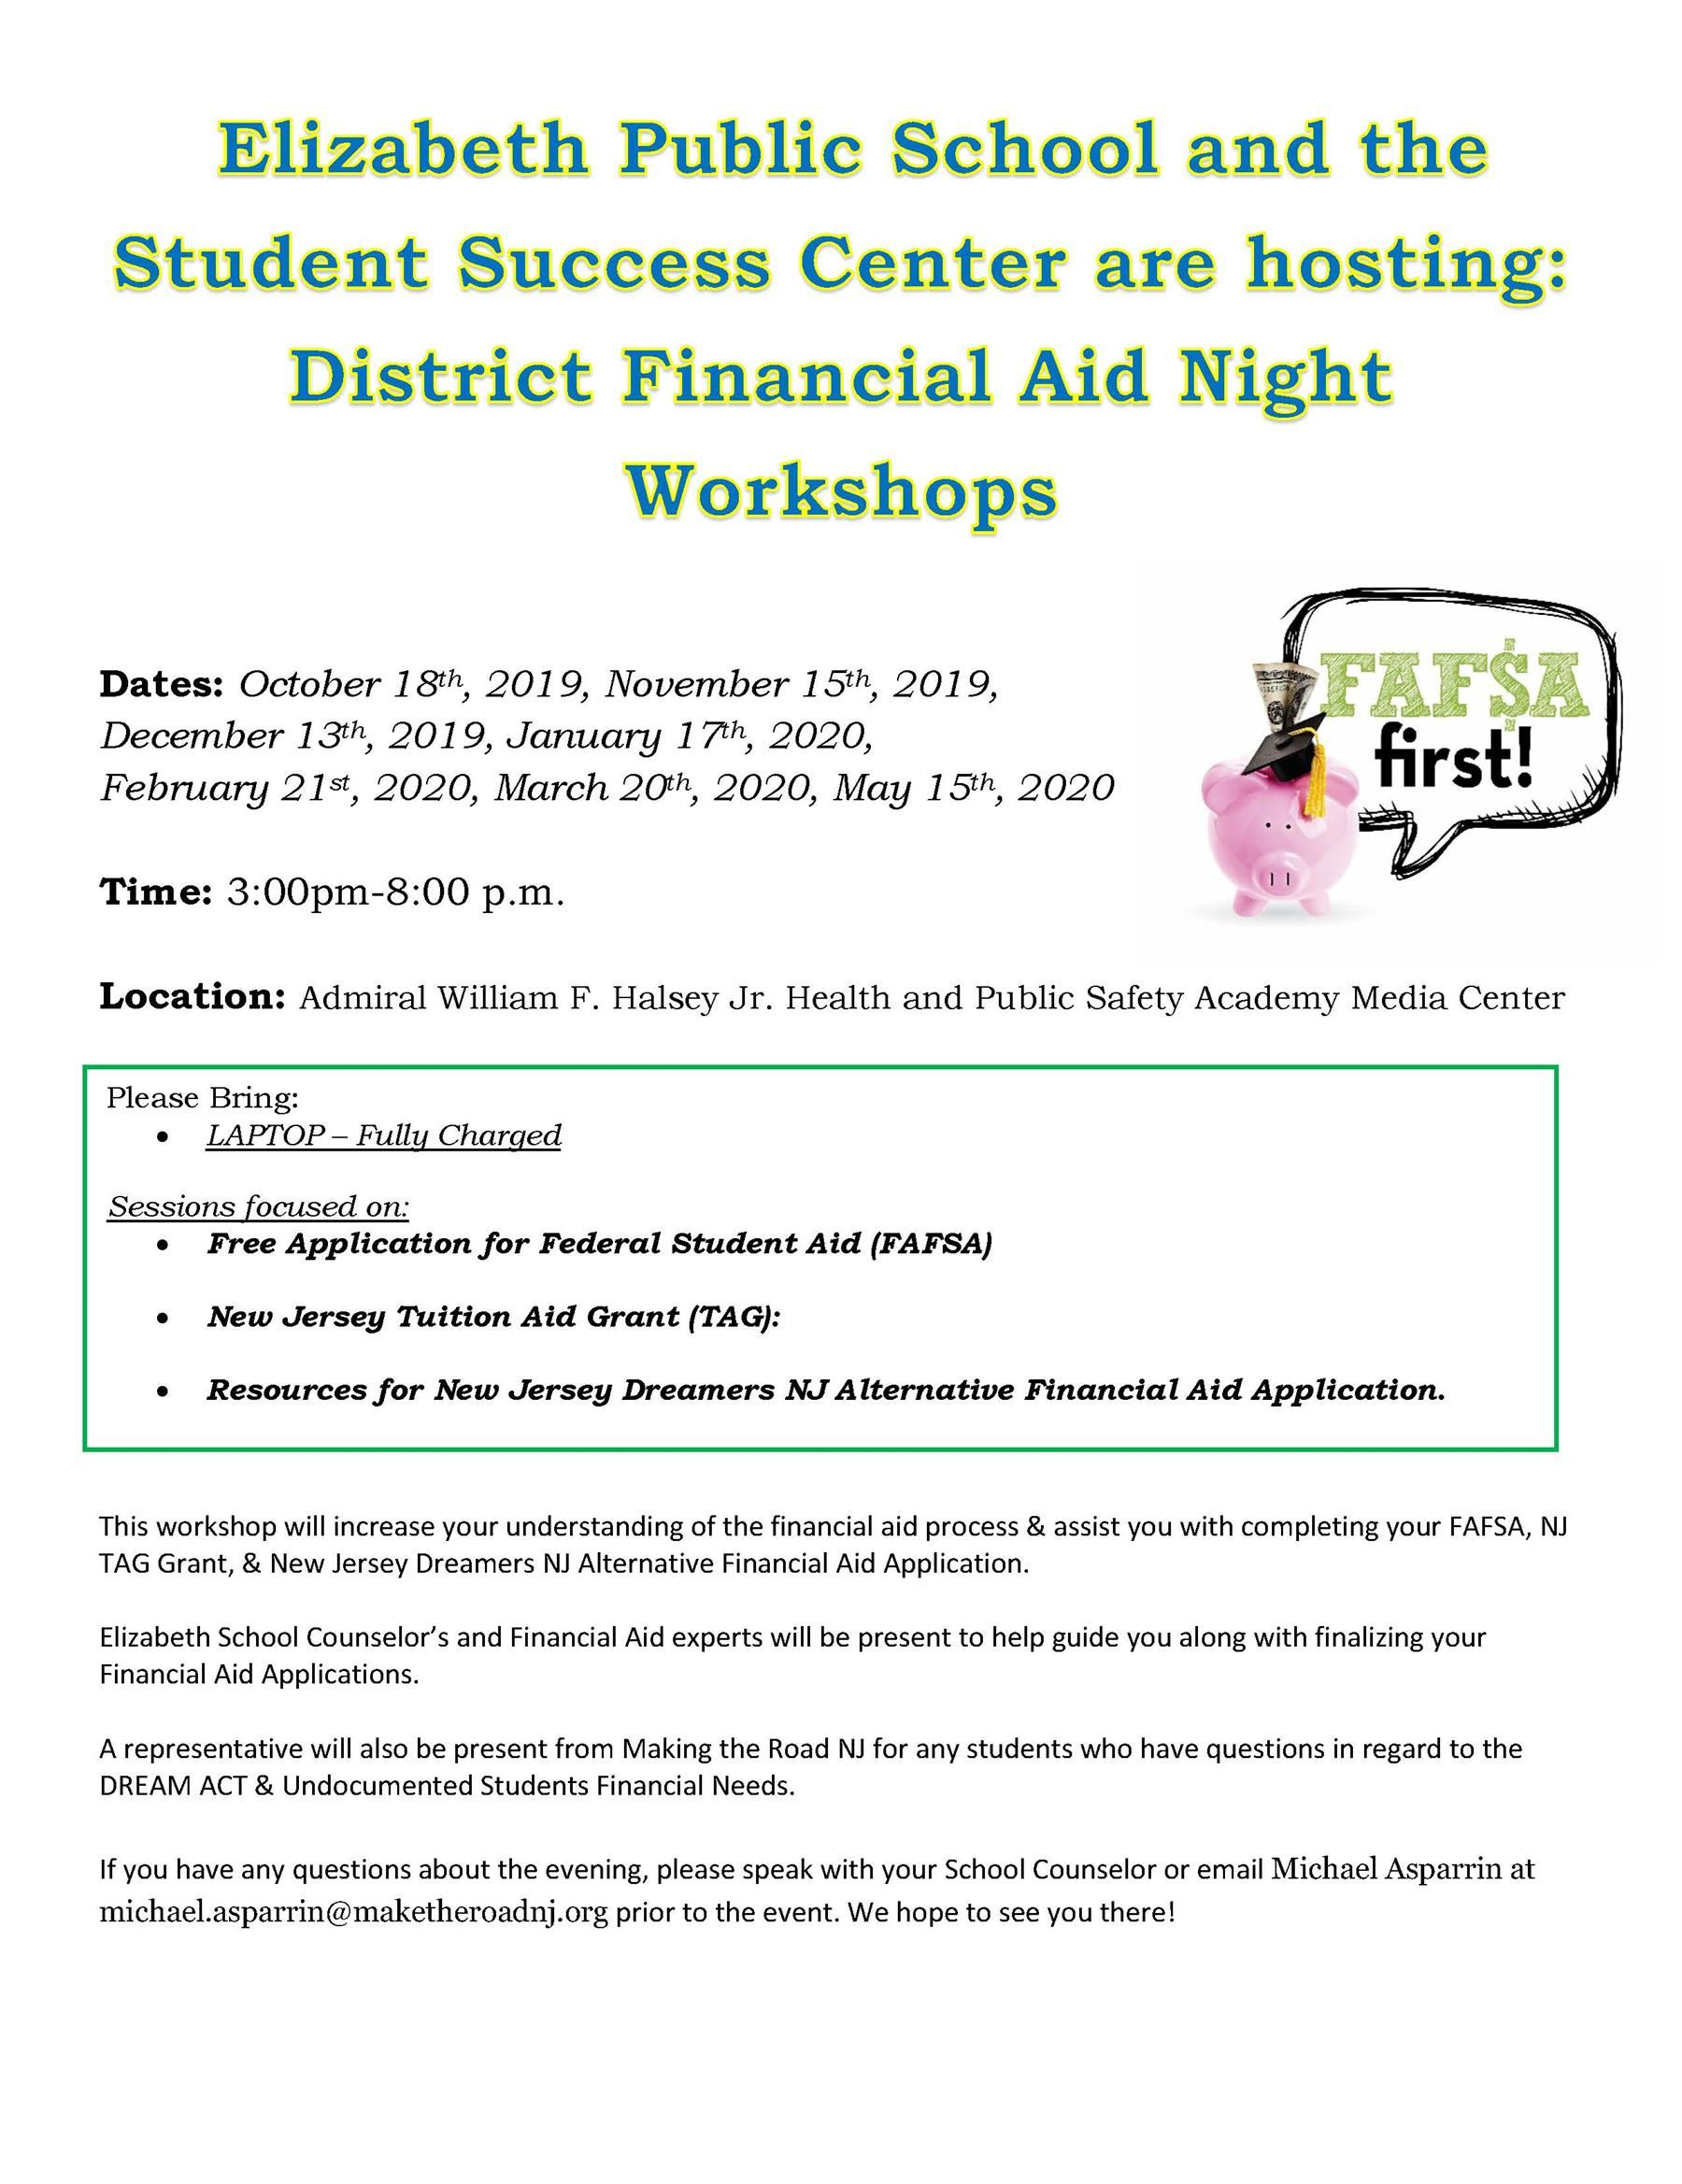 District Financial Aid Night Workshops